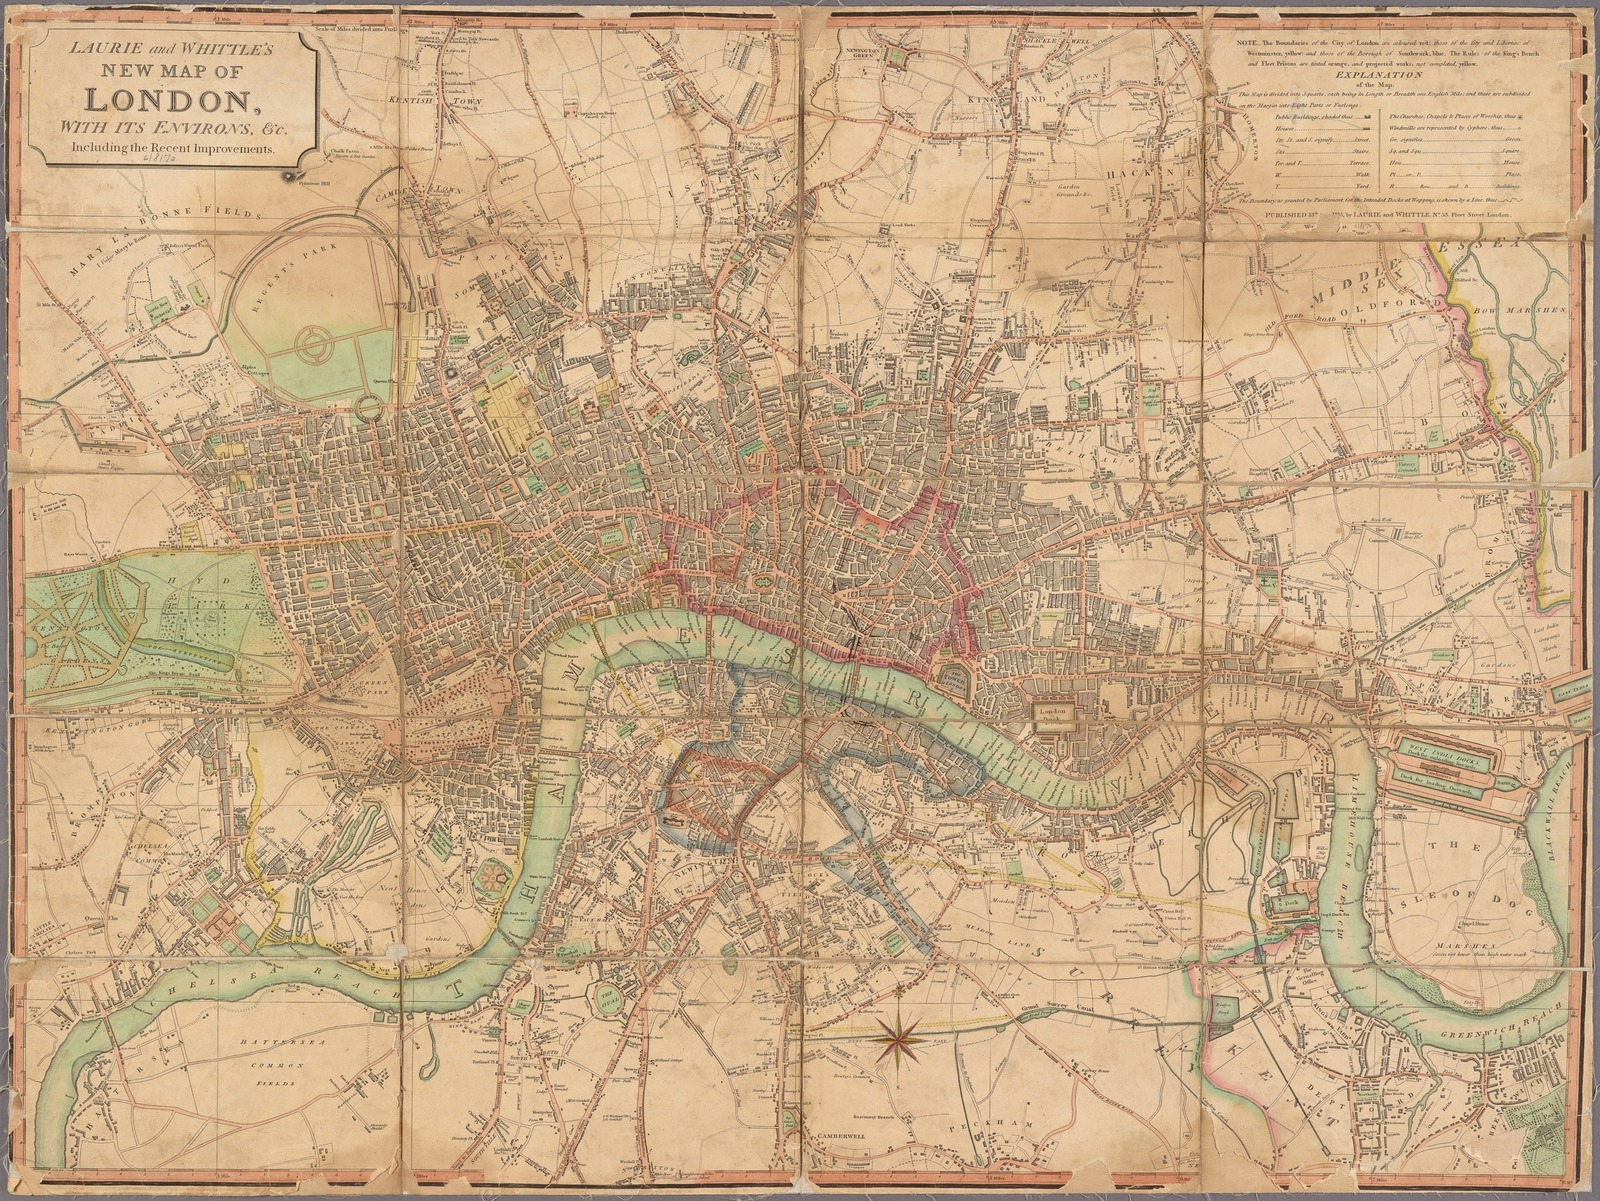 Map Of London 1600.Laurie And Whittle S New Map Of London With Its Environs C